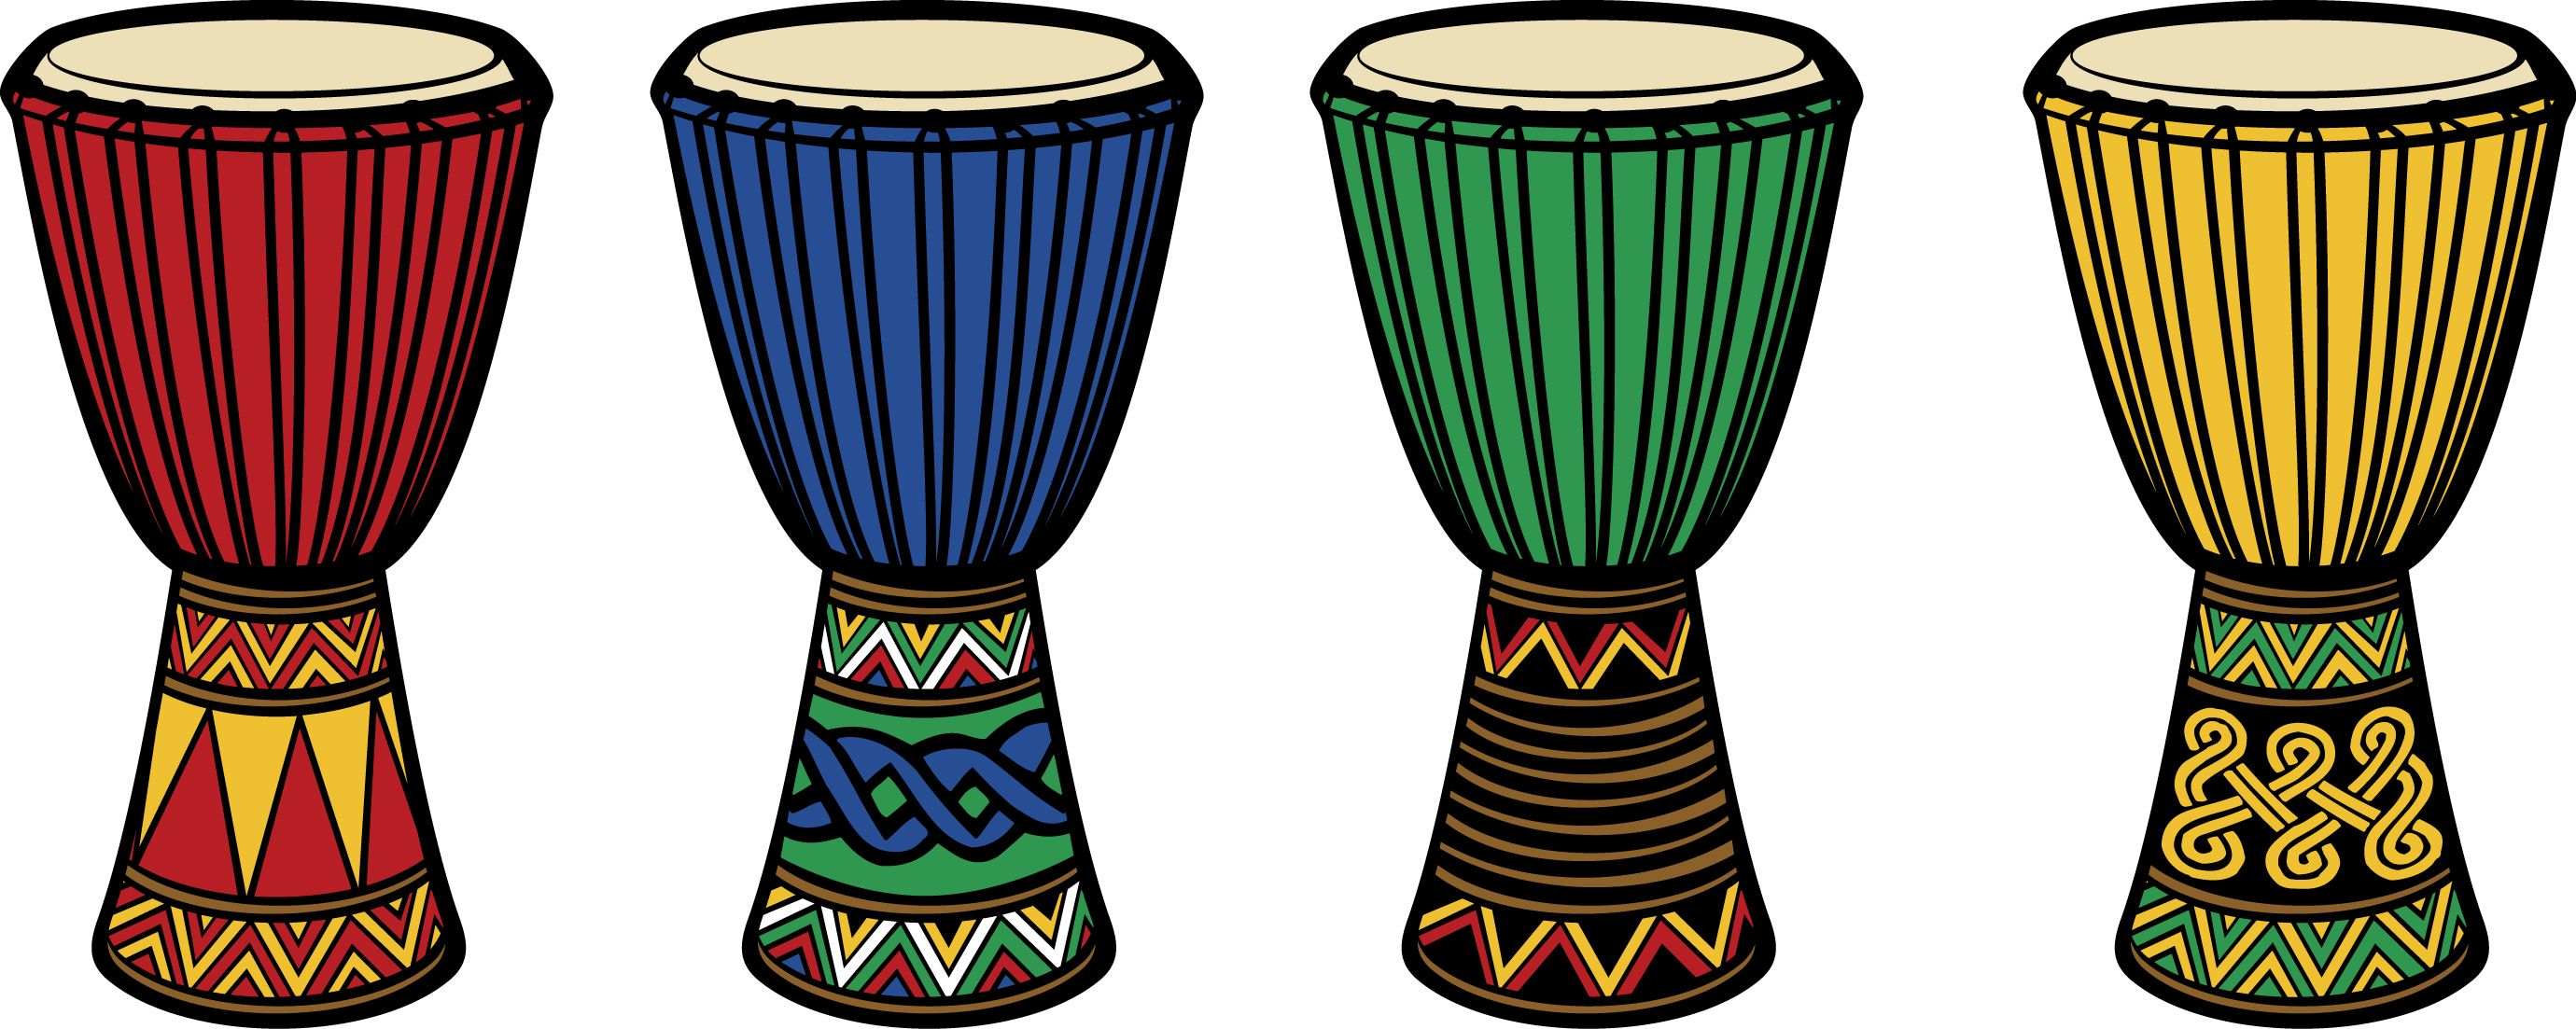 Drums pinterest . African clipart drum african